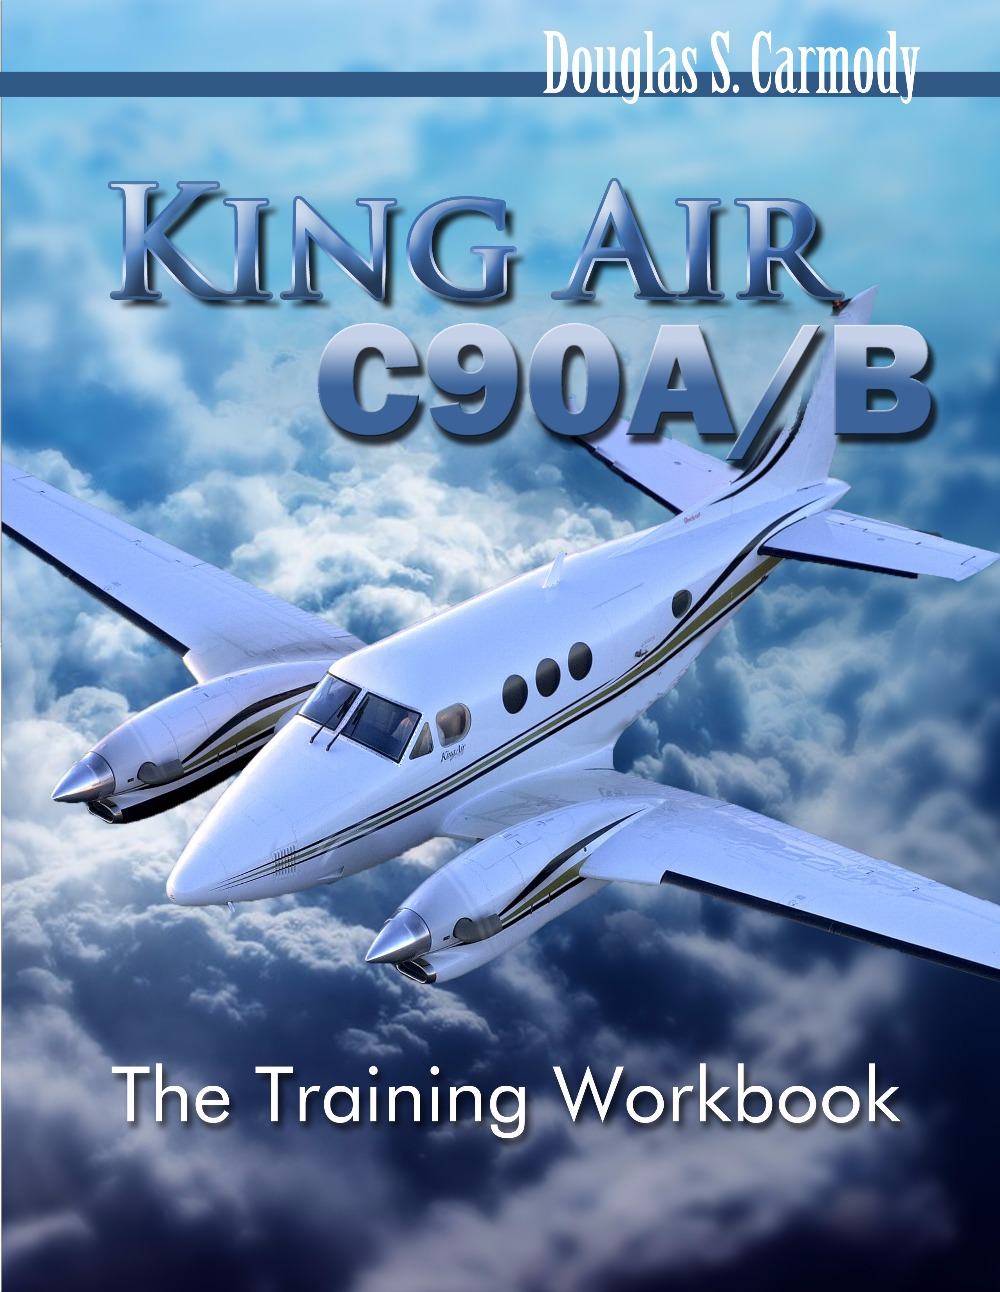 King Air C90A/B - The Training Workbook